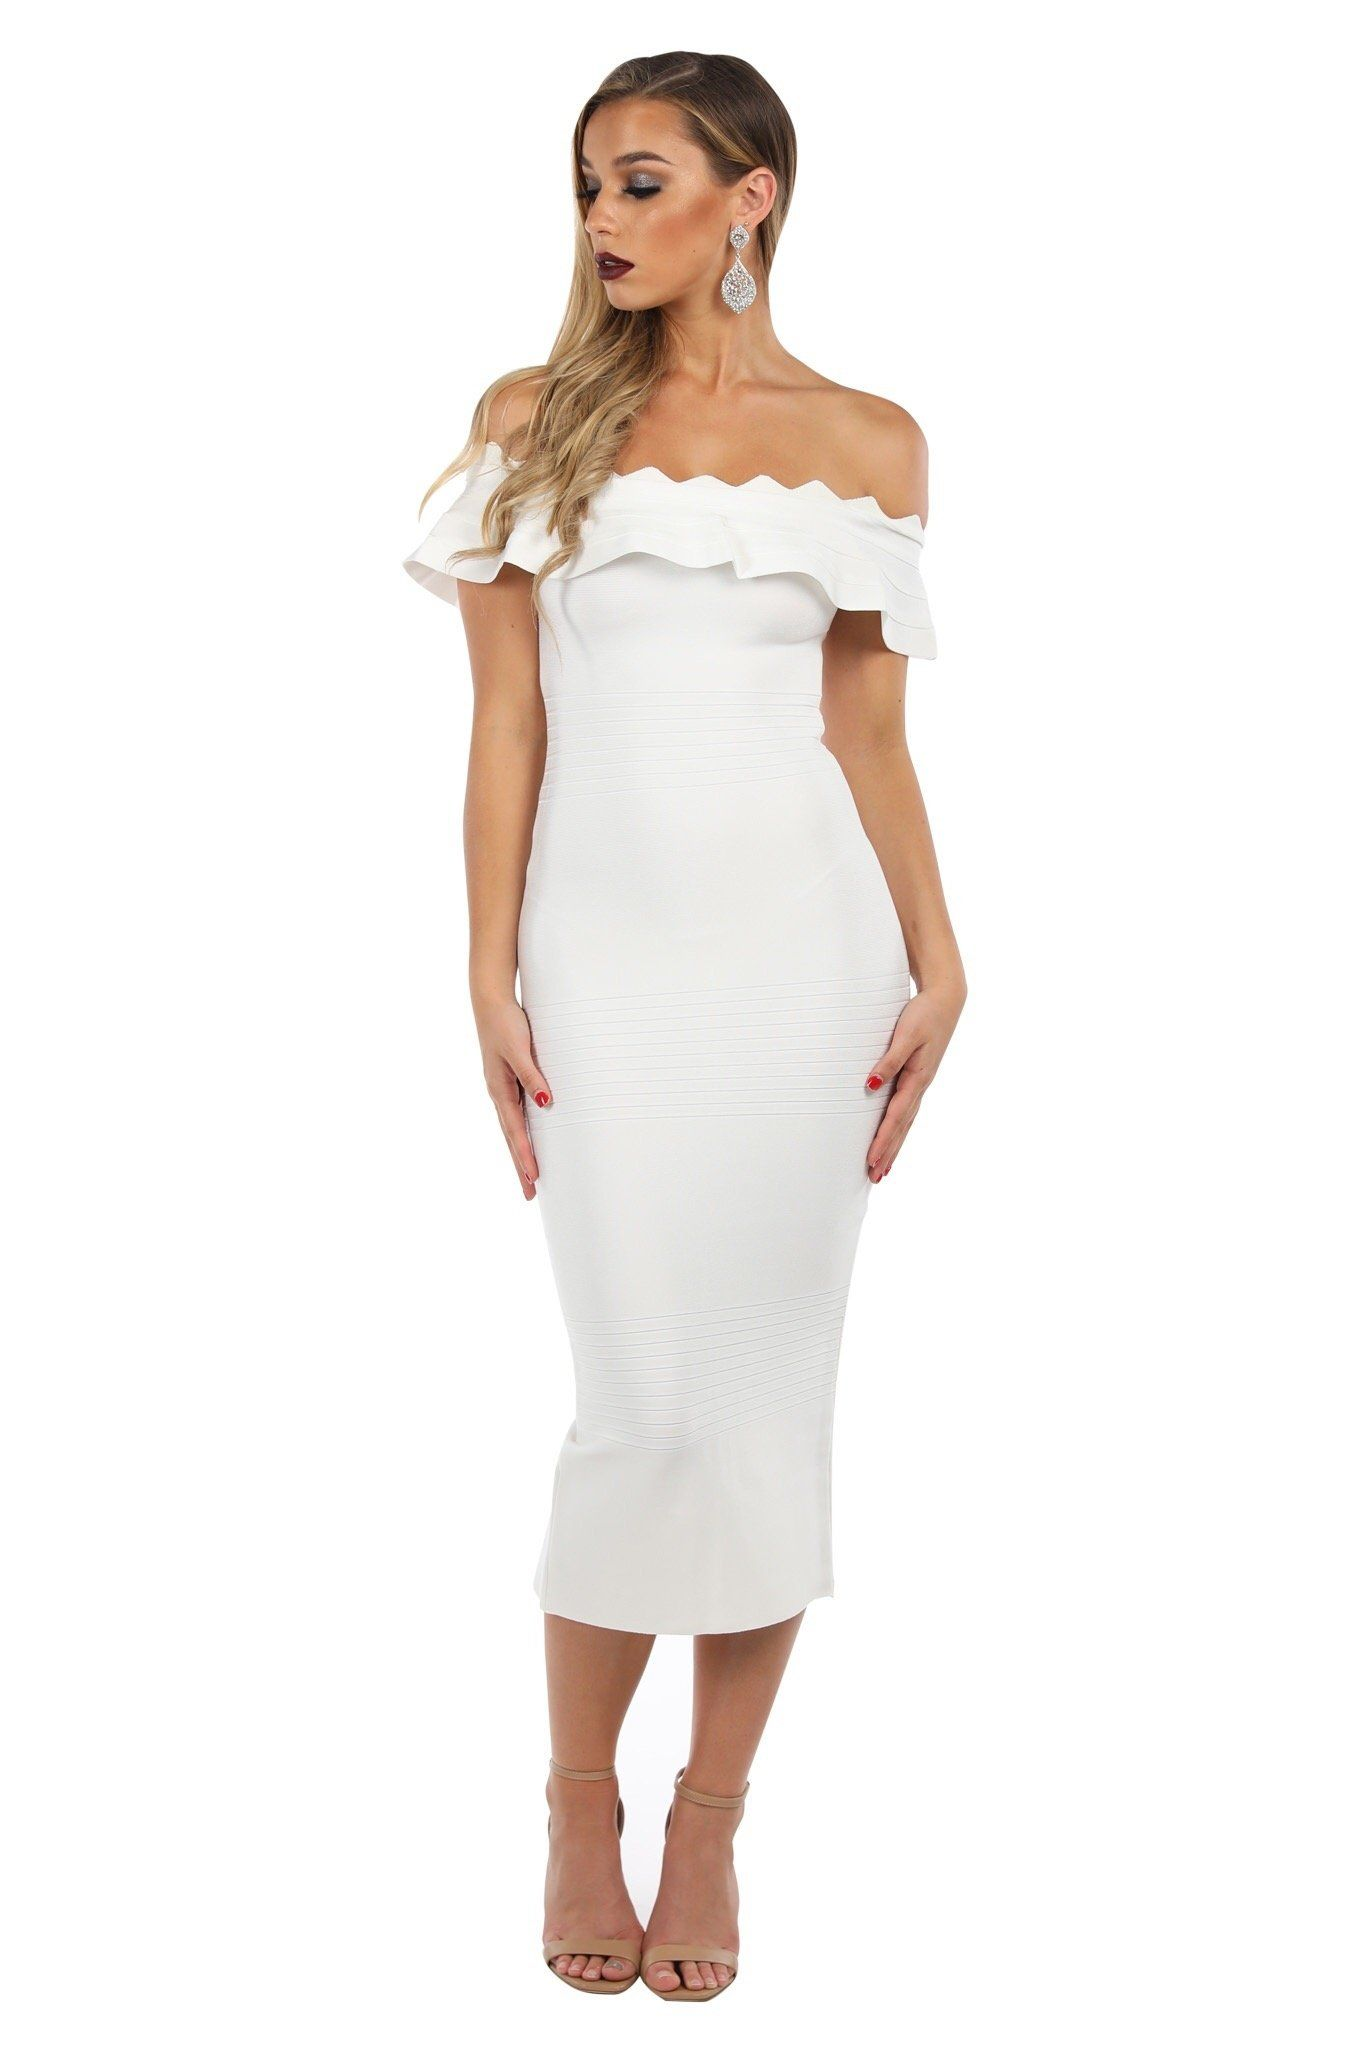 White below knee length bodycon bandage dress features off the shoulder ruffle frill peplum design and back slit